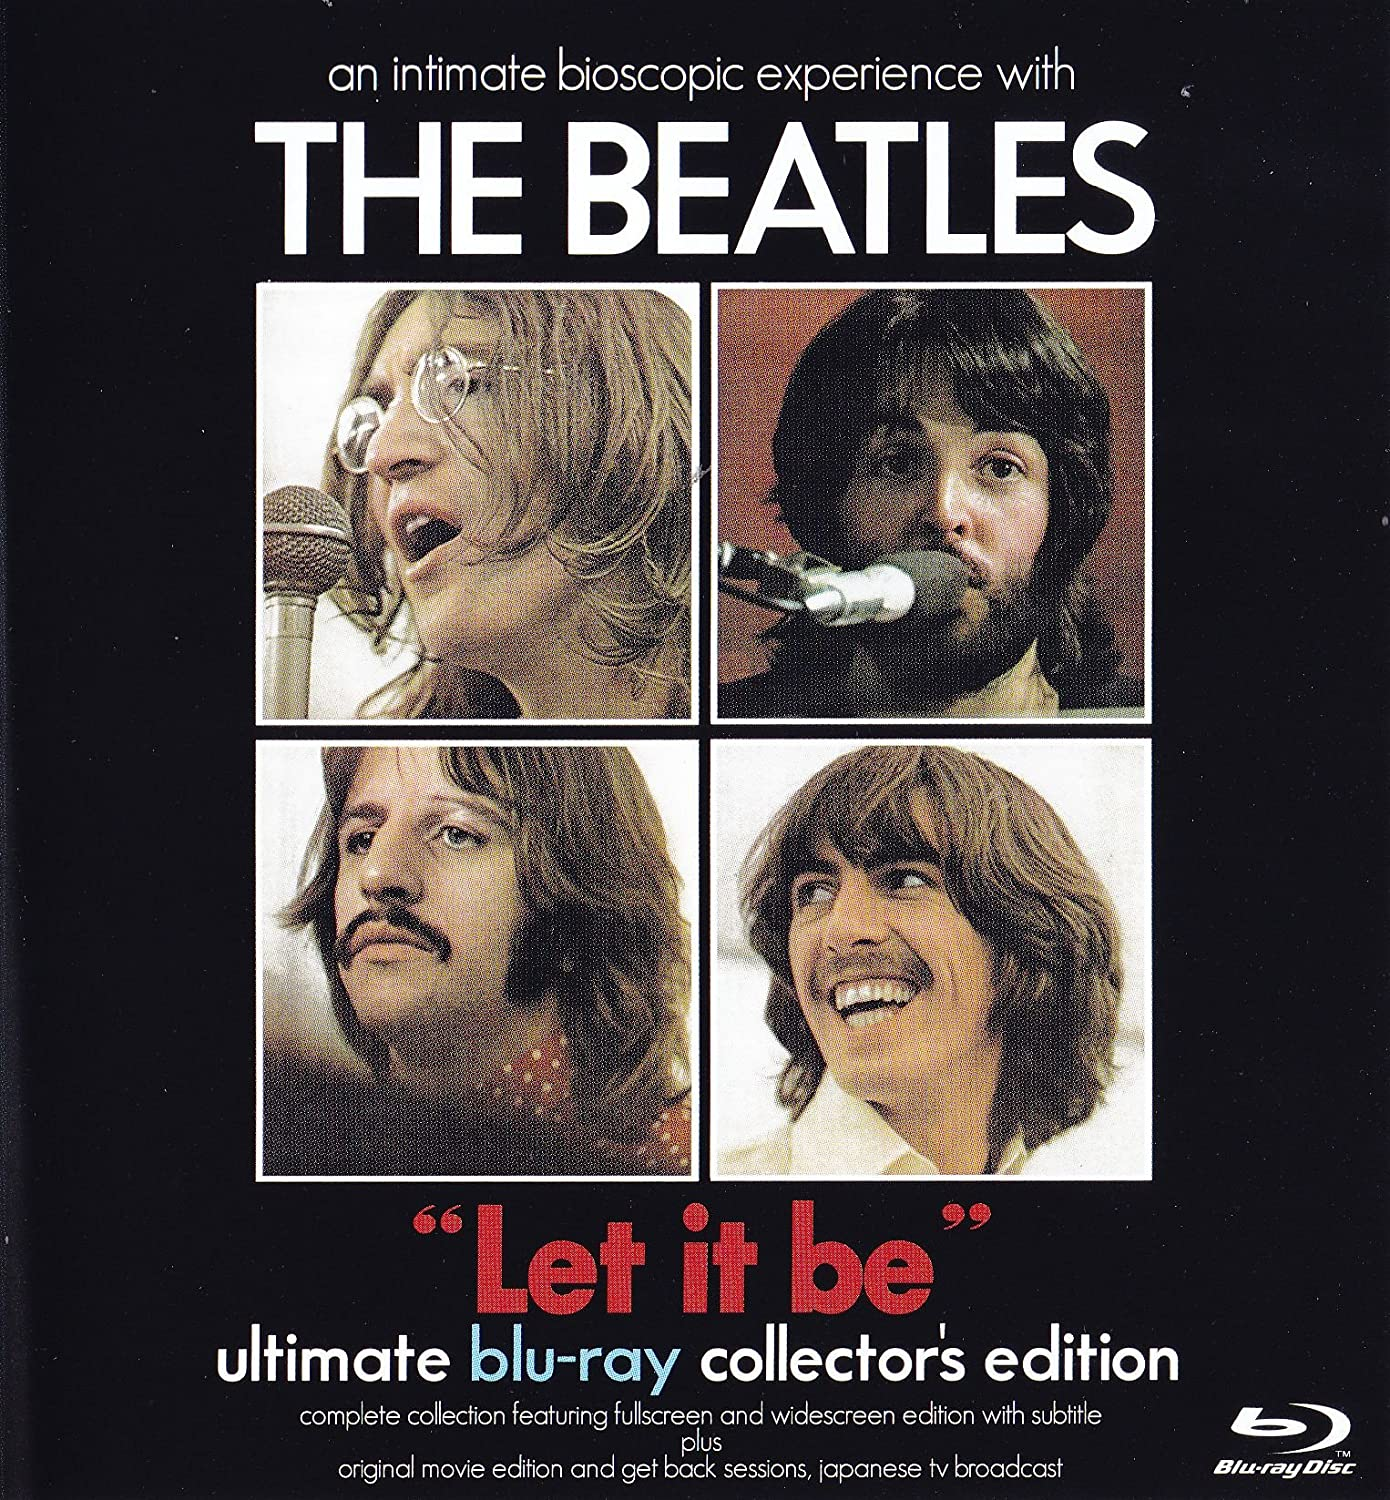 Amazon.com: The Beatles Let it be Blu Ray 2 Discs: The Beatles: Movies & TV